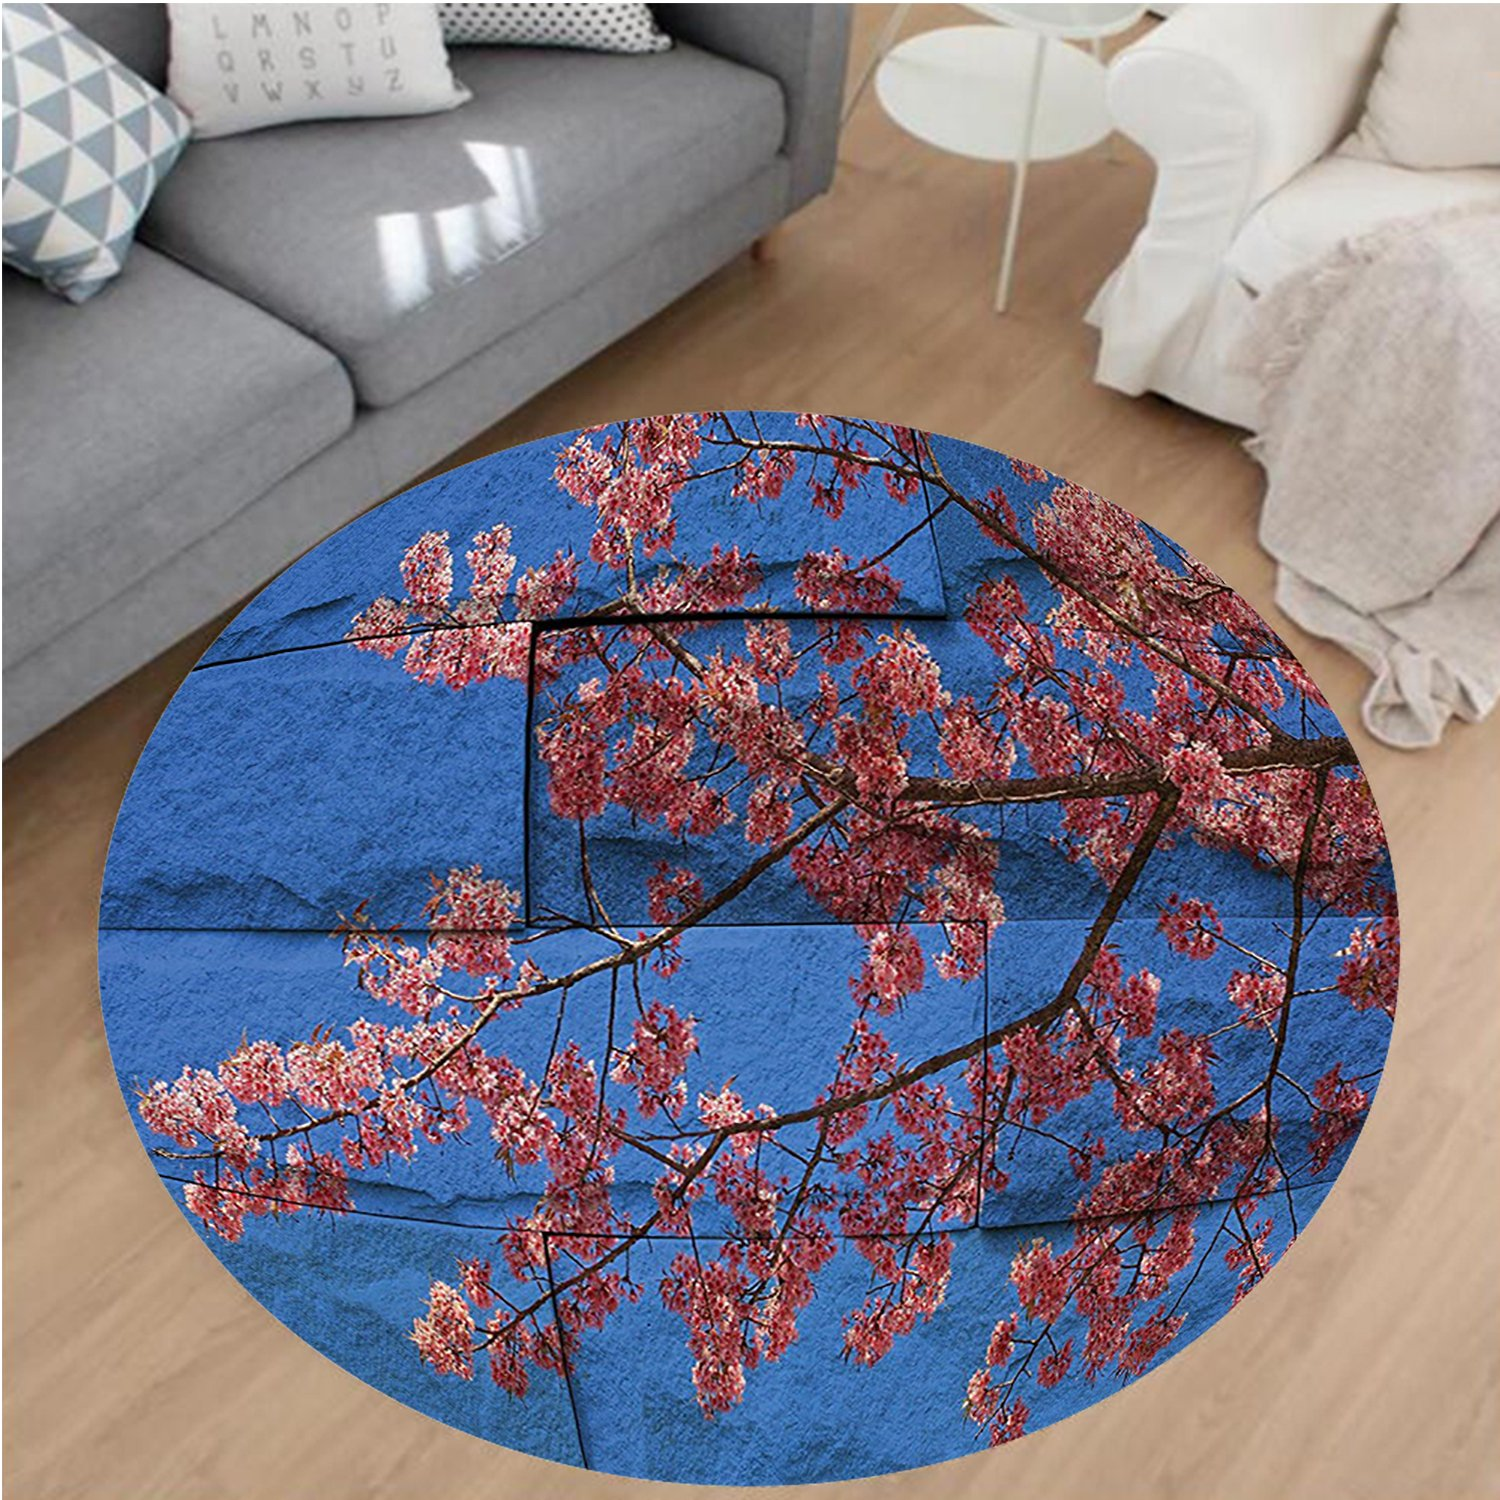 Nalahome Modern Flannel Microfiber Non-Slip Machine Washable Round Area Rug-Rustic Thai Sakura Blossom Mural Branch with Flowers Spring Floral Beauty Print Pink Blue area rugs Home Decor-Round 71'' by Nalahome